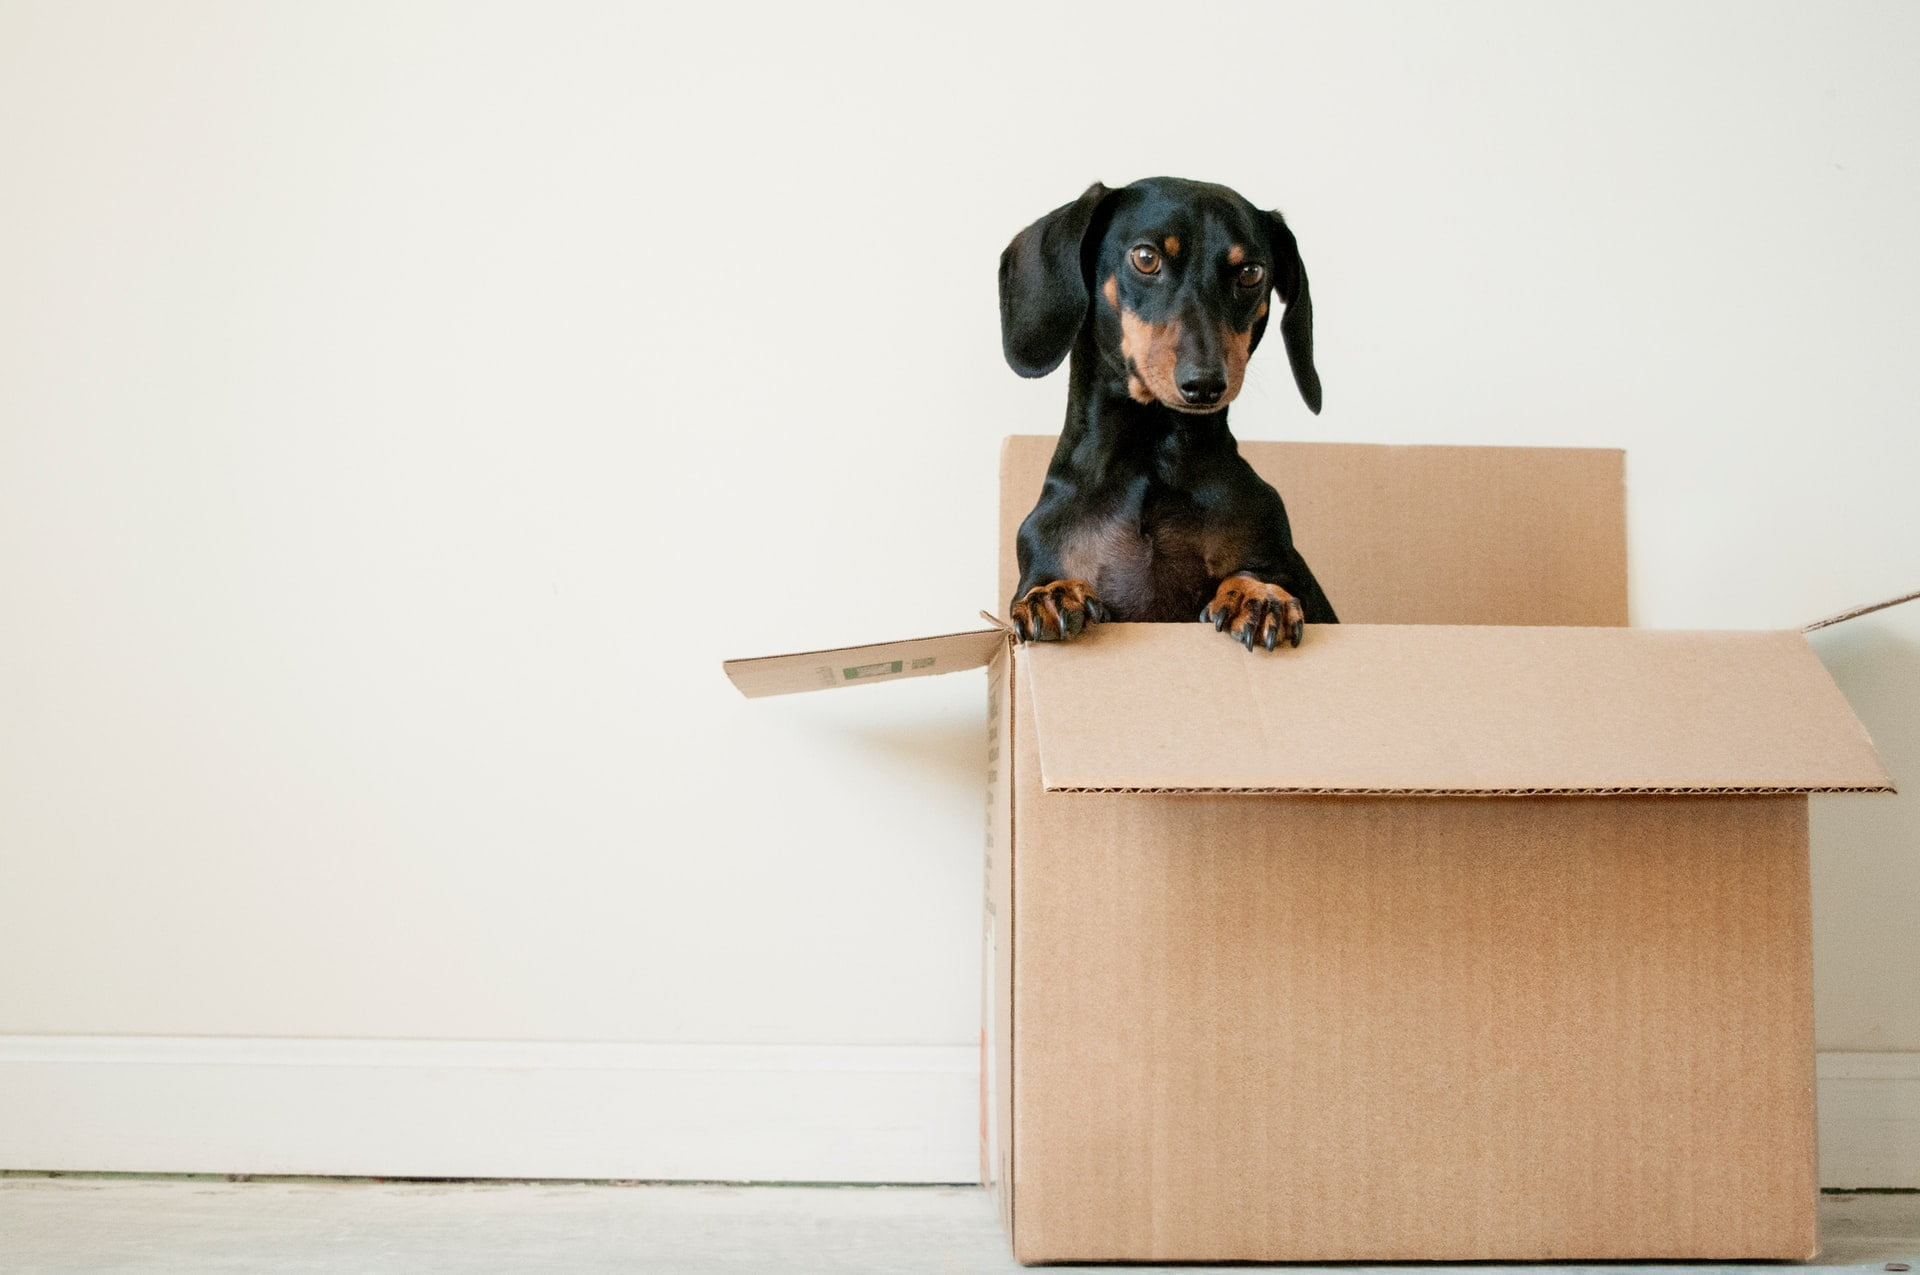 A dog sitting in a box Description automatically generated with medium confidence